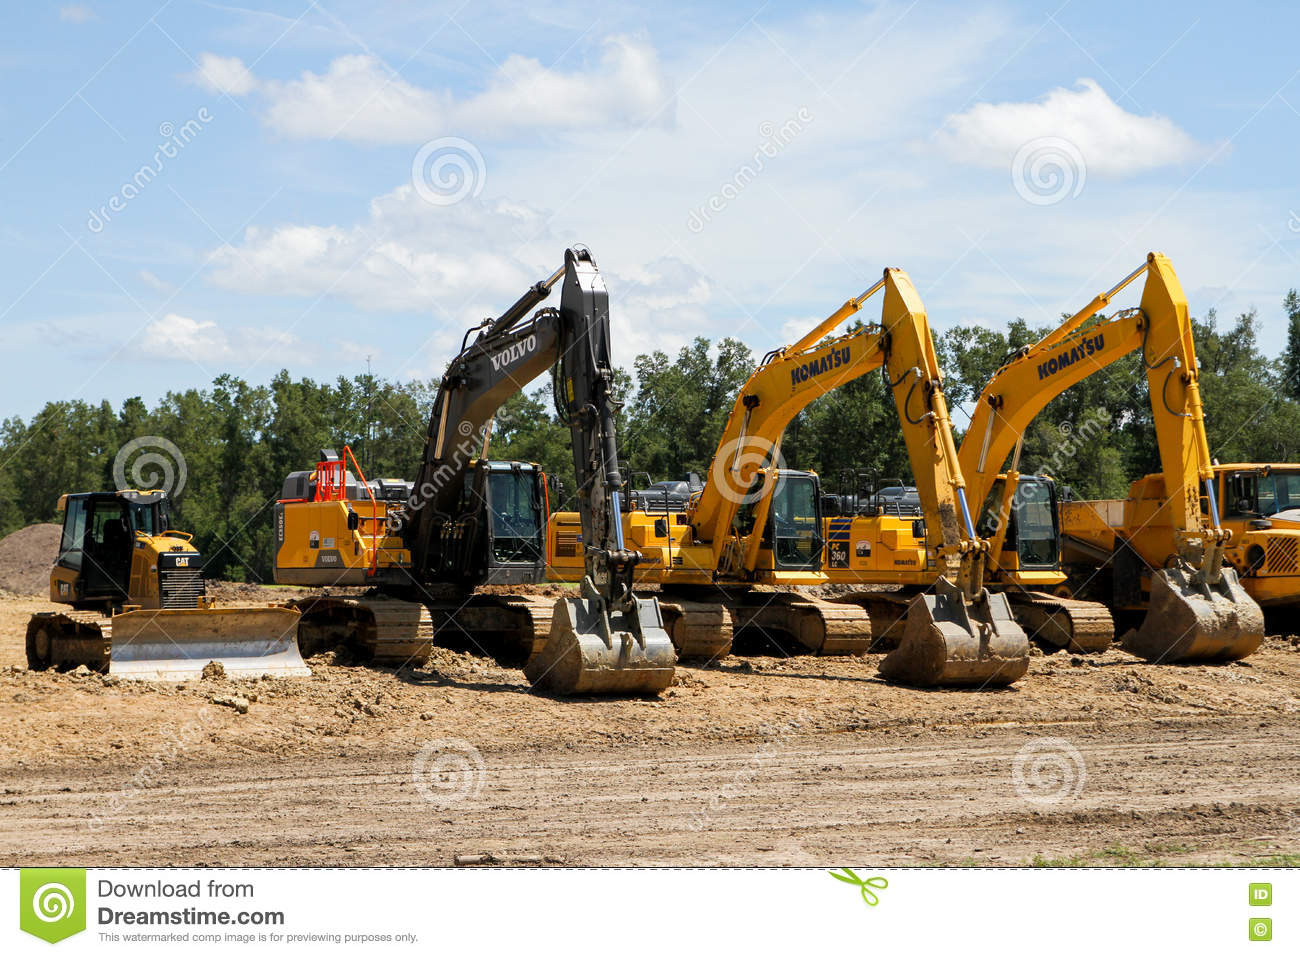 Construction equipment editorial photography  Image of dump